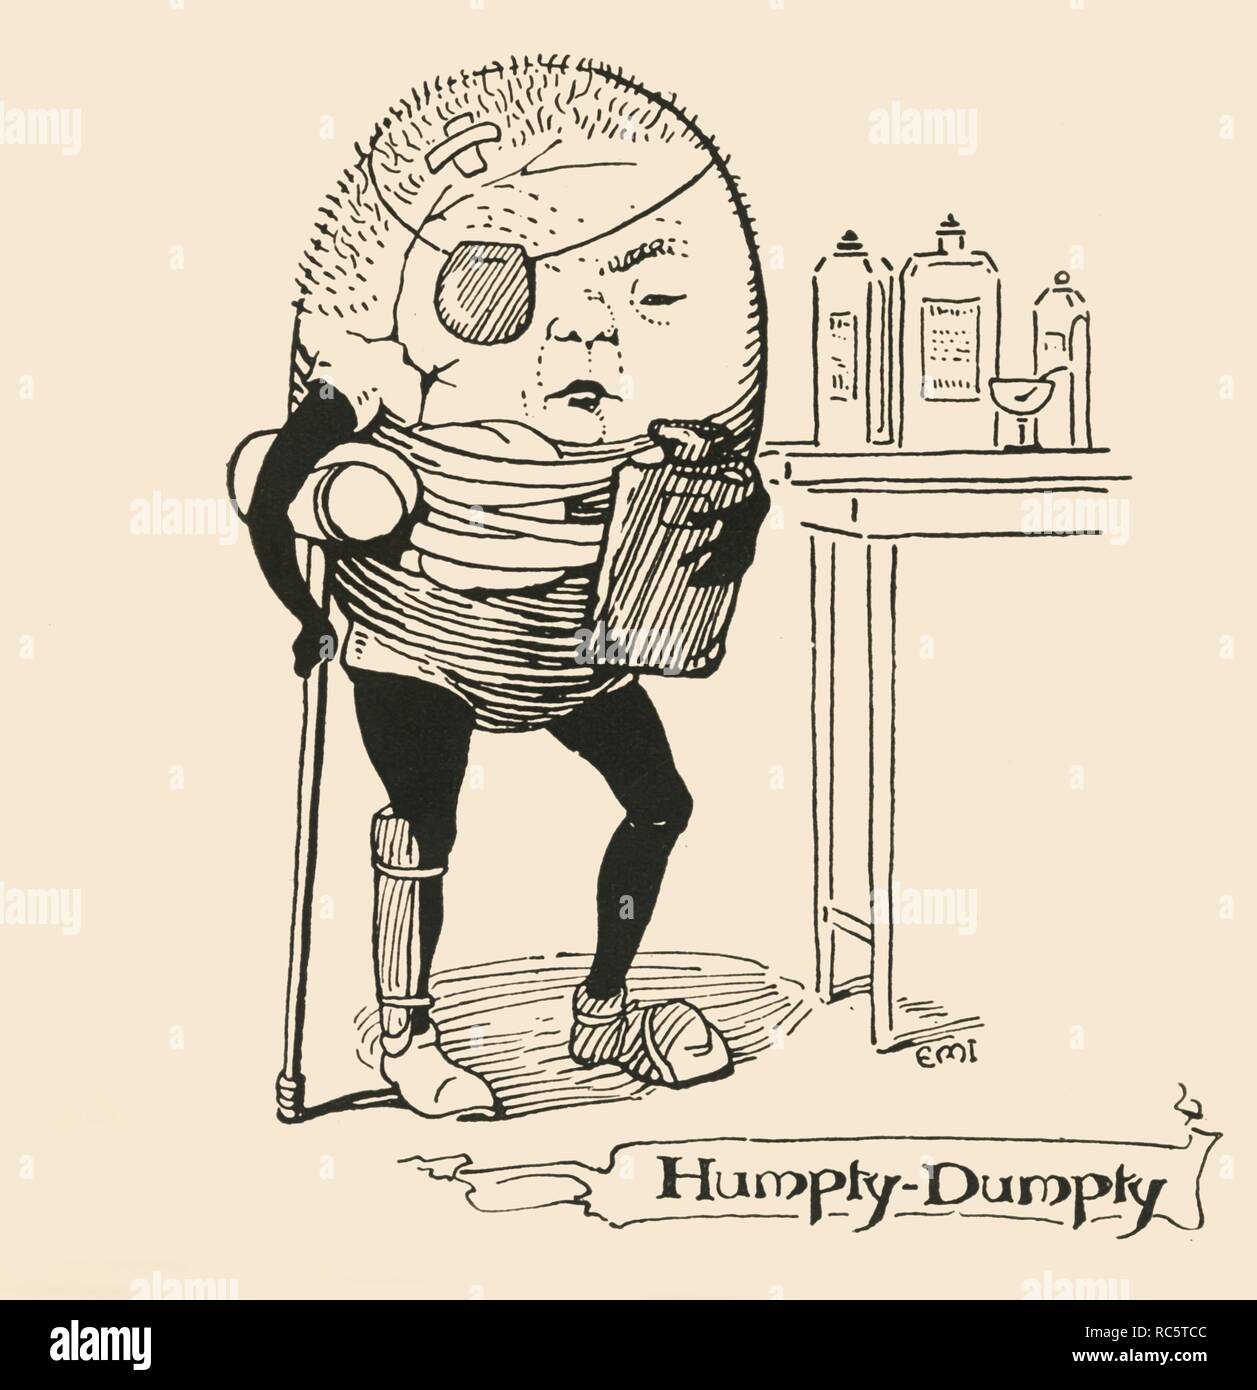 "'Humpty-Dumpty', 1928. Nursery-rhyme character with crutch, eye-patch and hot water bottle. Illustration originally published in a children's annual, [SW Partridge & Co]. From ""The Bookman - Special Christmas Number 1928"". [Hodder & Stoughton Ltd, London, 1928] - Stock Image"